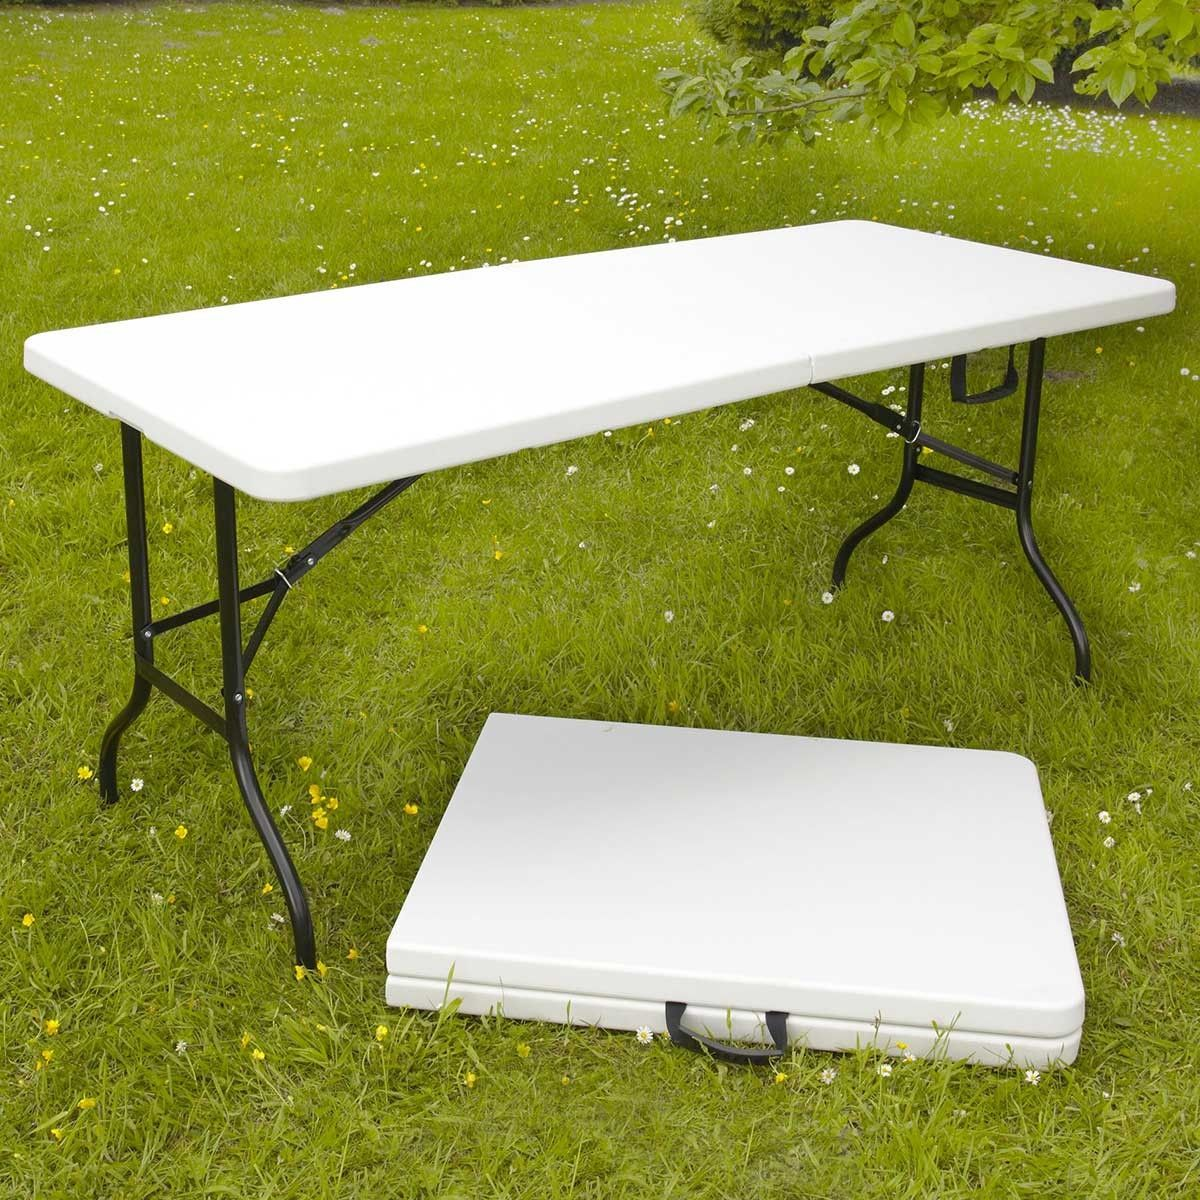 Tables pliantes de camping 180cm 8 places blanches 180cm - Tables pliantes castorama ...